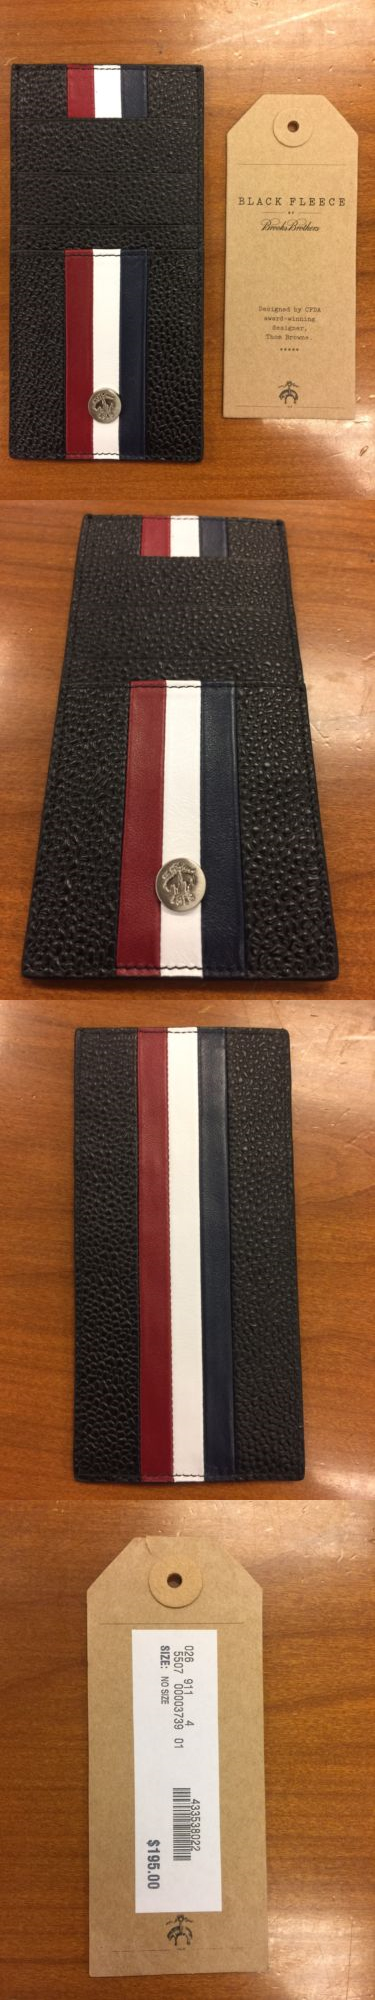 Business and credit card cases 105860 brooks brothers black fleece business and credit card cases 105860 brooks brothers black fleece genuine leather card holder red reheart Images